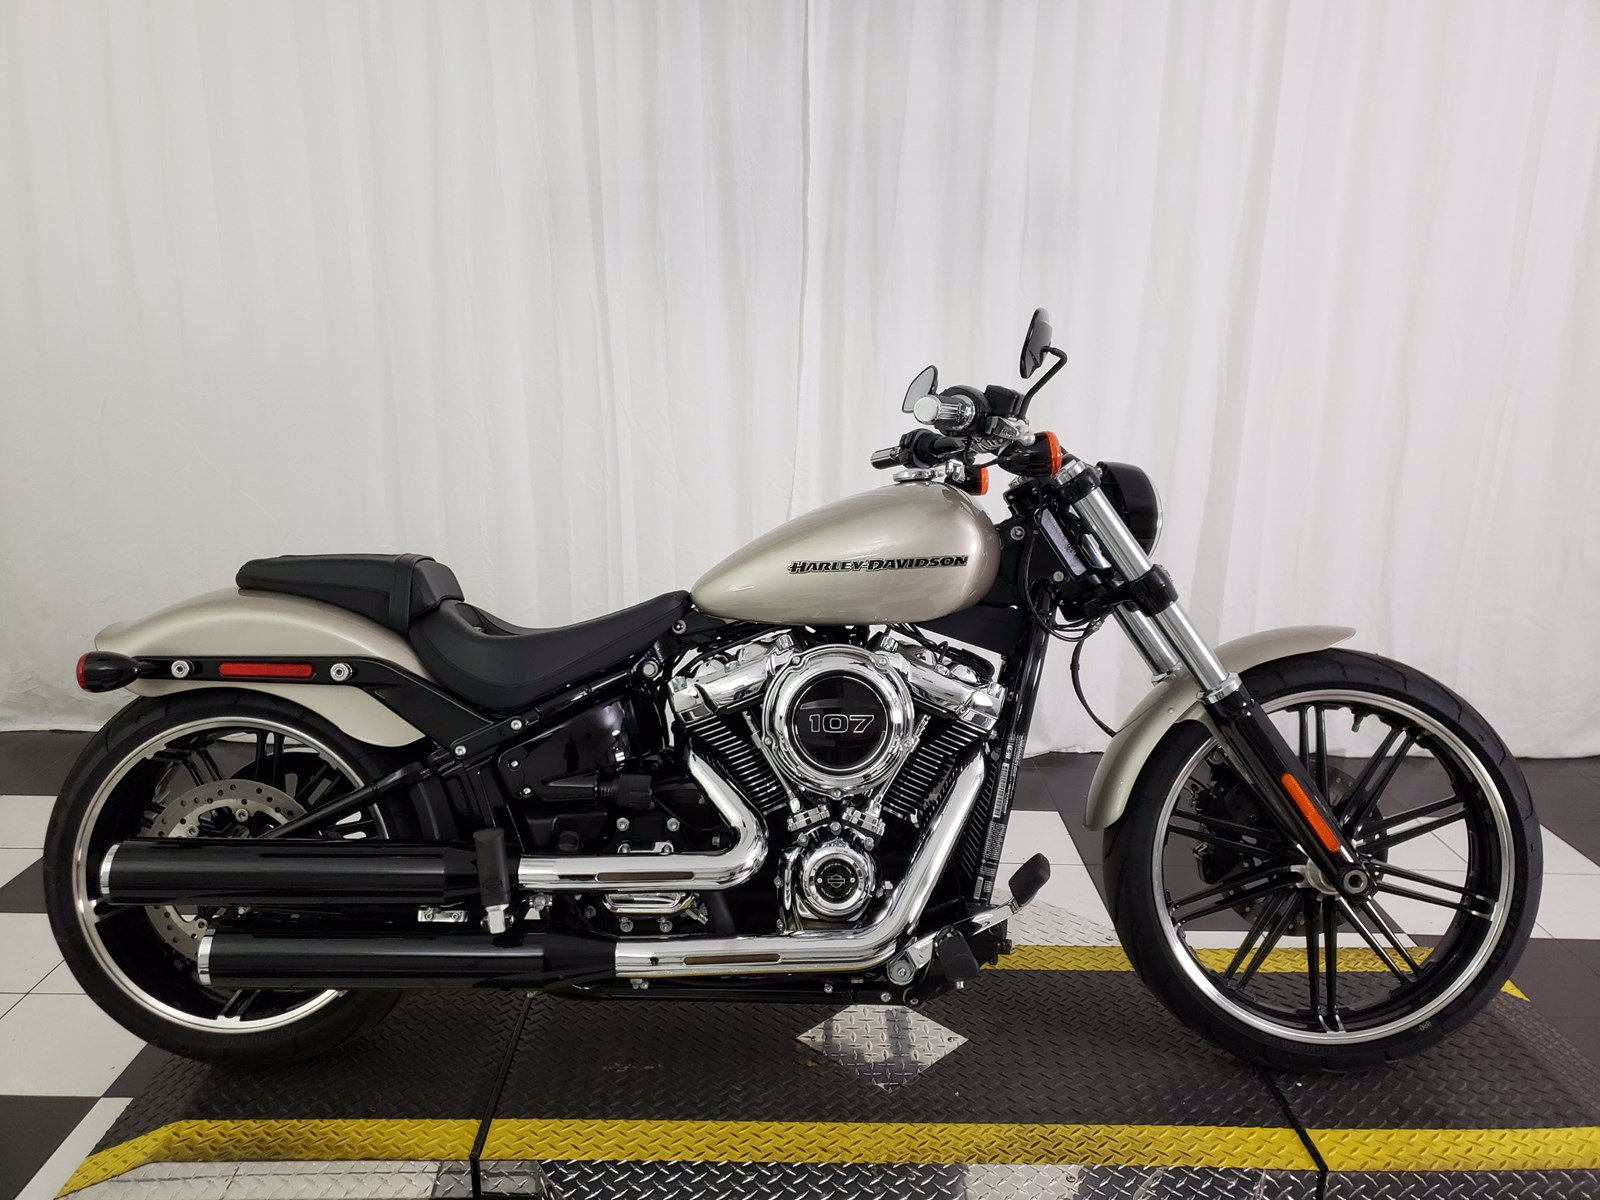 Pre-Owned 2018 Harley-Davidson Softail Breakout FXBR